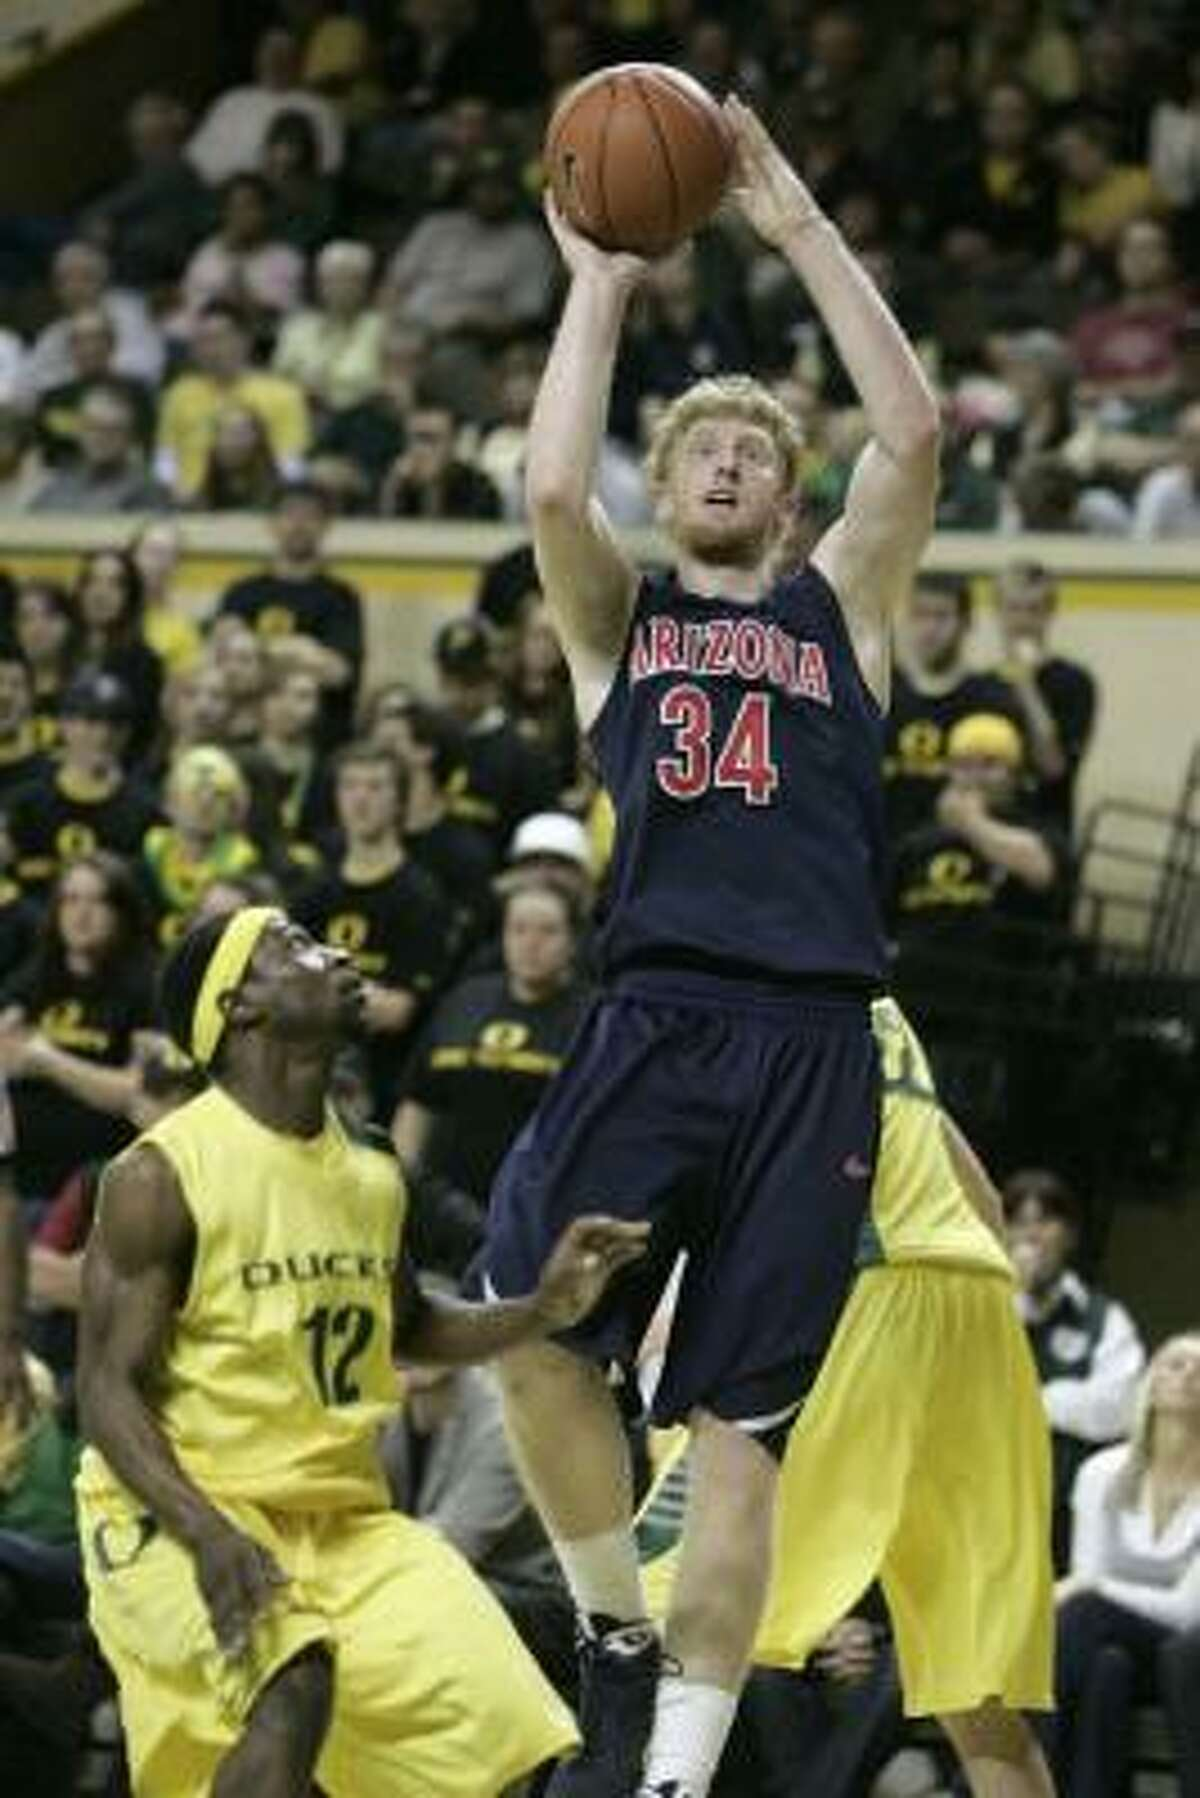 Chase Budinger, 6-7, 206, Arizona Arizona's Budinger (34) brings outstanding athleticism and shot-making ability, though he is not much of a one-on-one player. That could make him more of a small forward playing off the ball, but he could be considered a shooting guard, depending on the team and role.